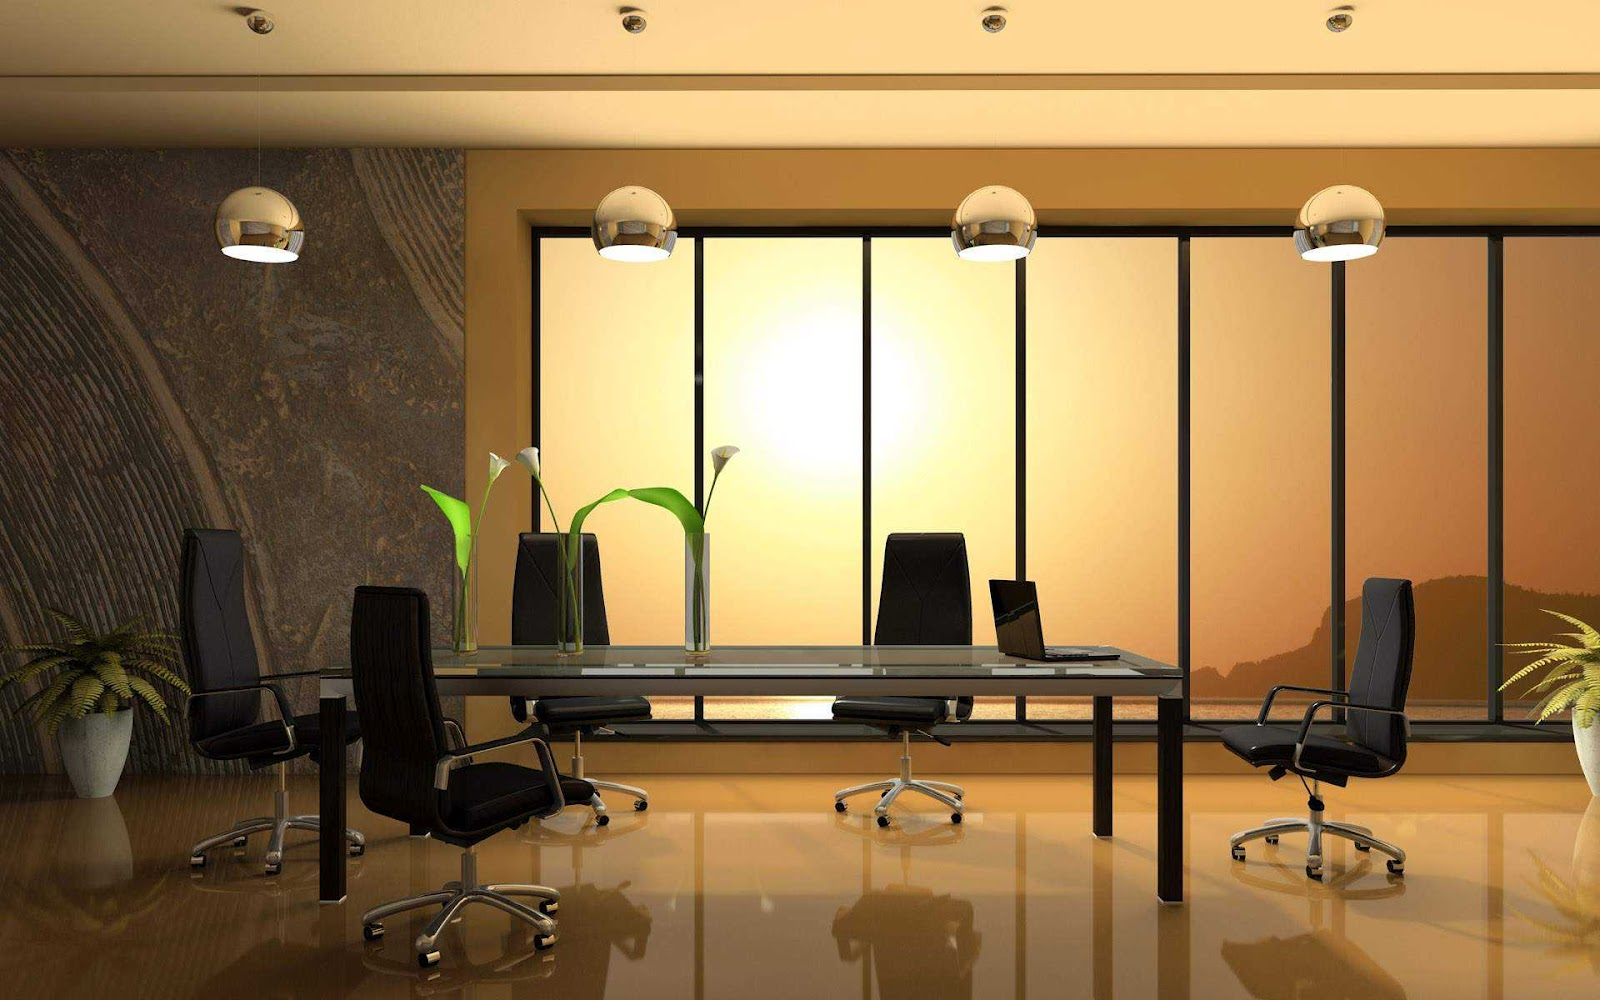 Luxury office office furniture design modern home office for Modern office design ideas